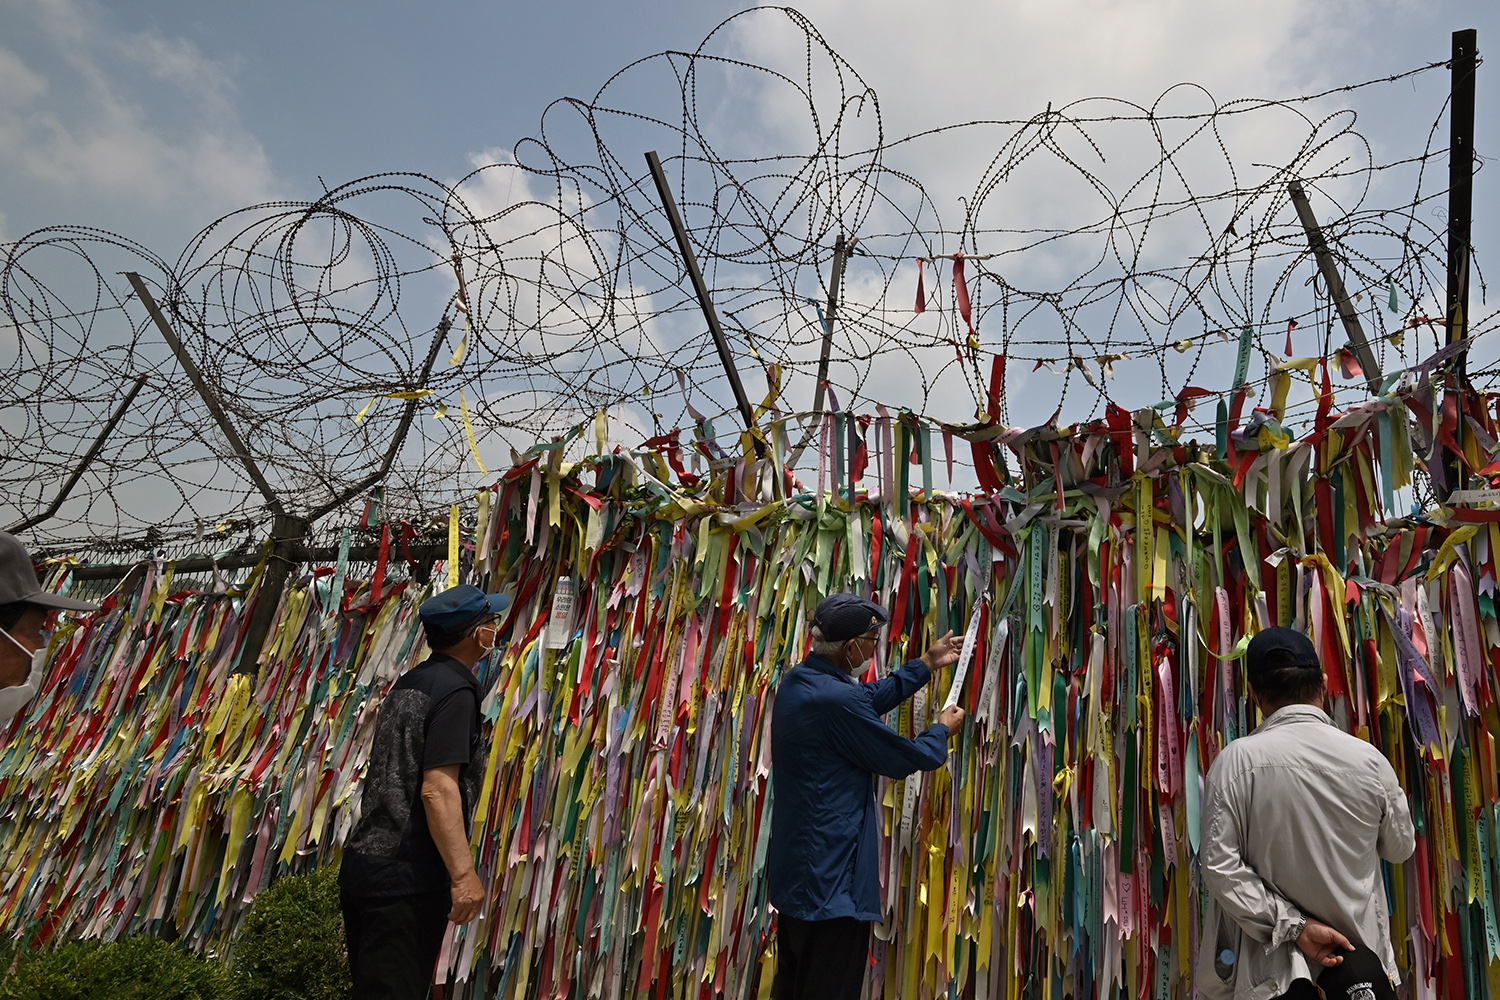 Visitors look at ribbons wishing for peace and reunification of the Korean Peninsula on a military fence in the border city of Paju, South Korea, on June 16. JUNG YEON-JE/AFP via Getty Images